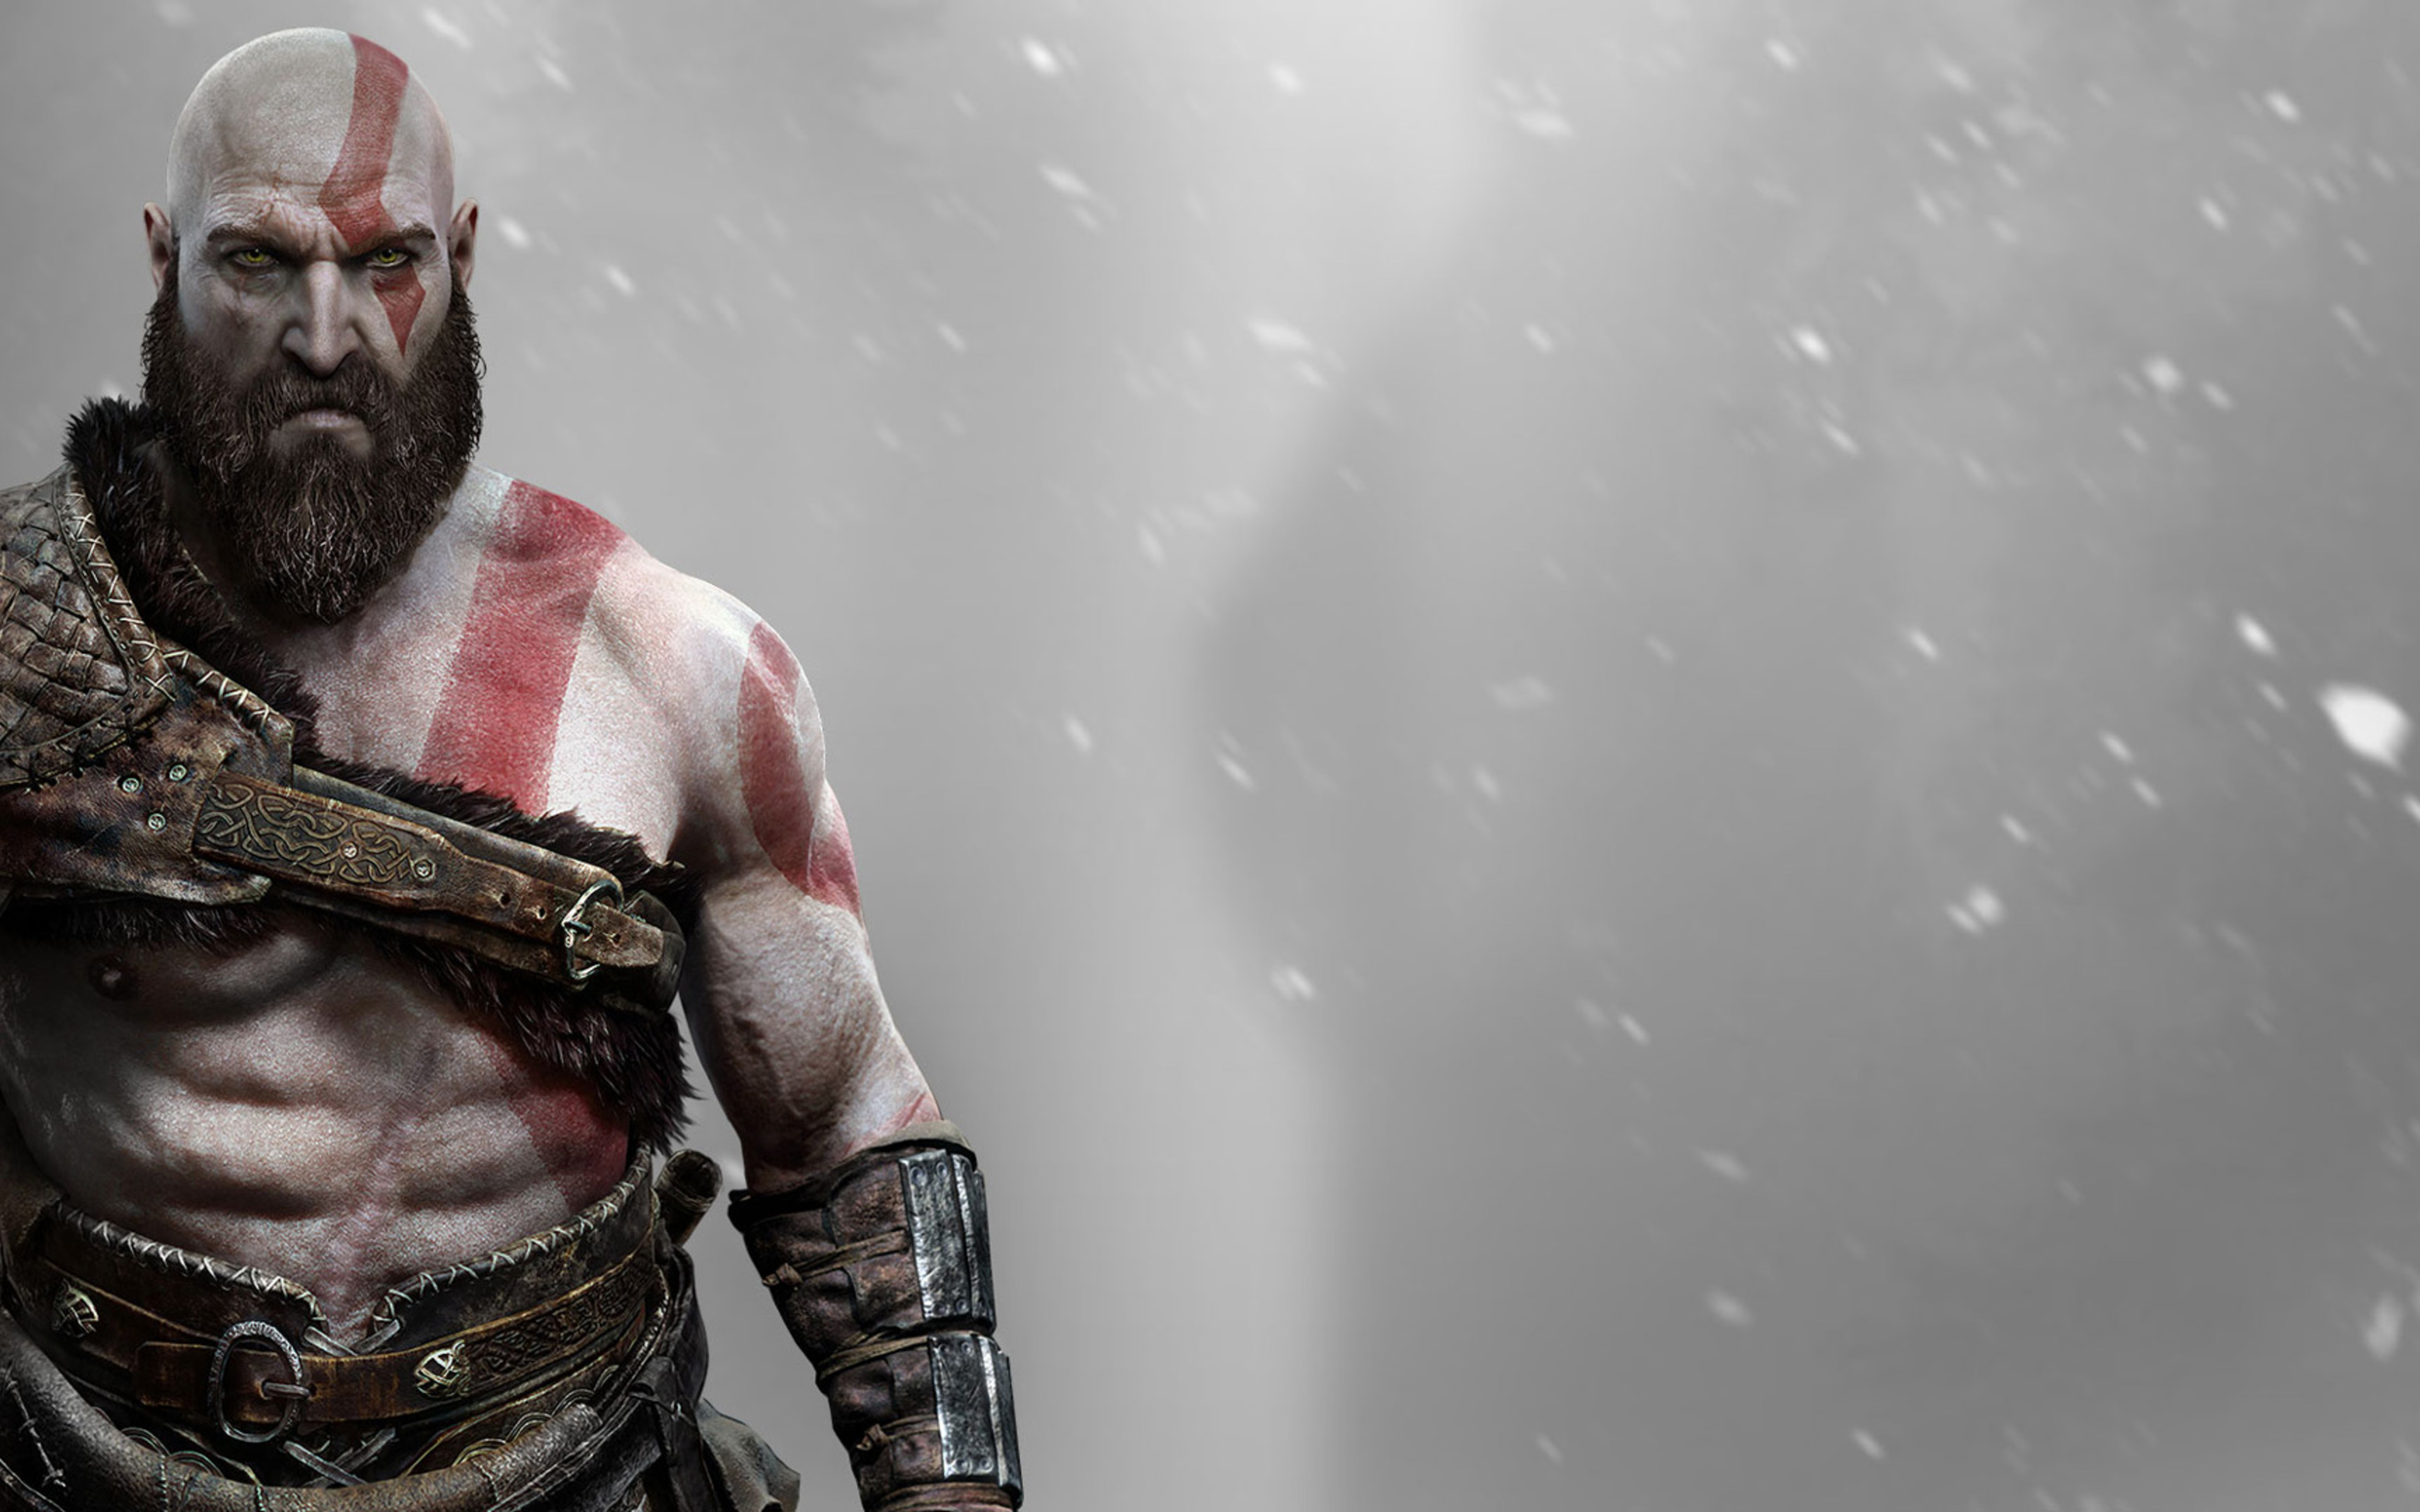 3840x2400 kratos god of war 4k hd 4k wallpapers images - 4k wallpaper of god ...